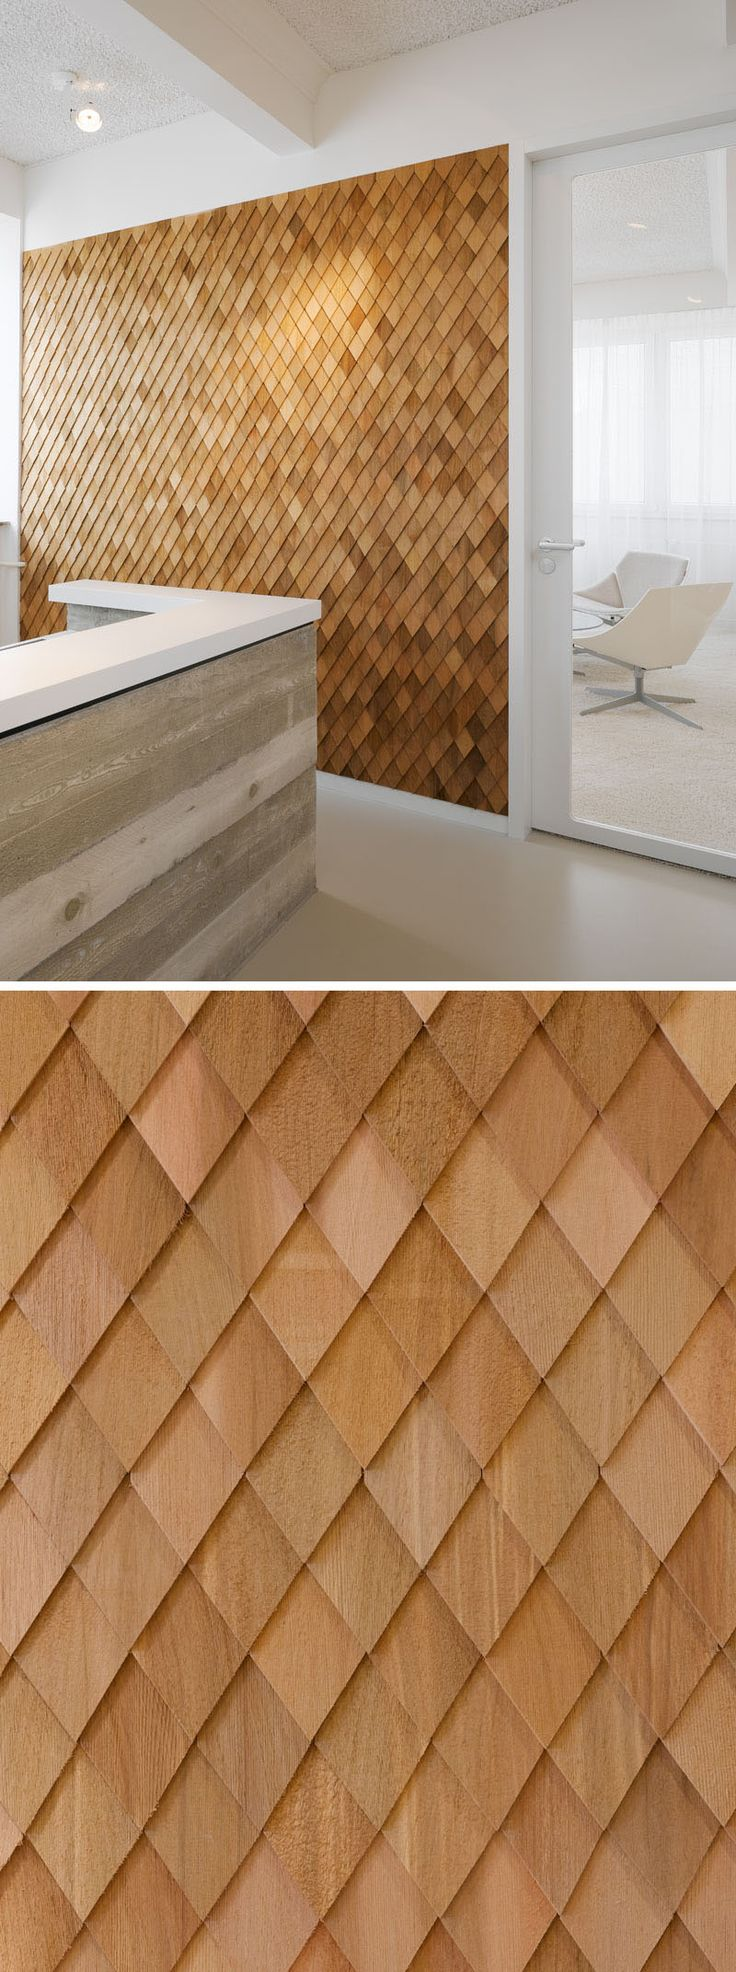 Interior Design Idea - In this contemporary office interior, the designers used wooden shingles on various wall panels to act as accent walls and to help create texture in the space.